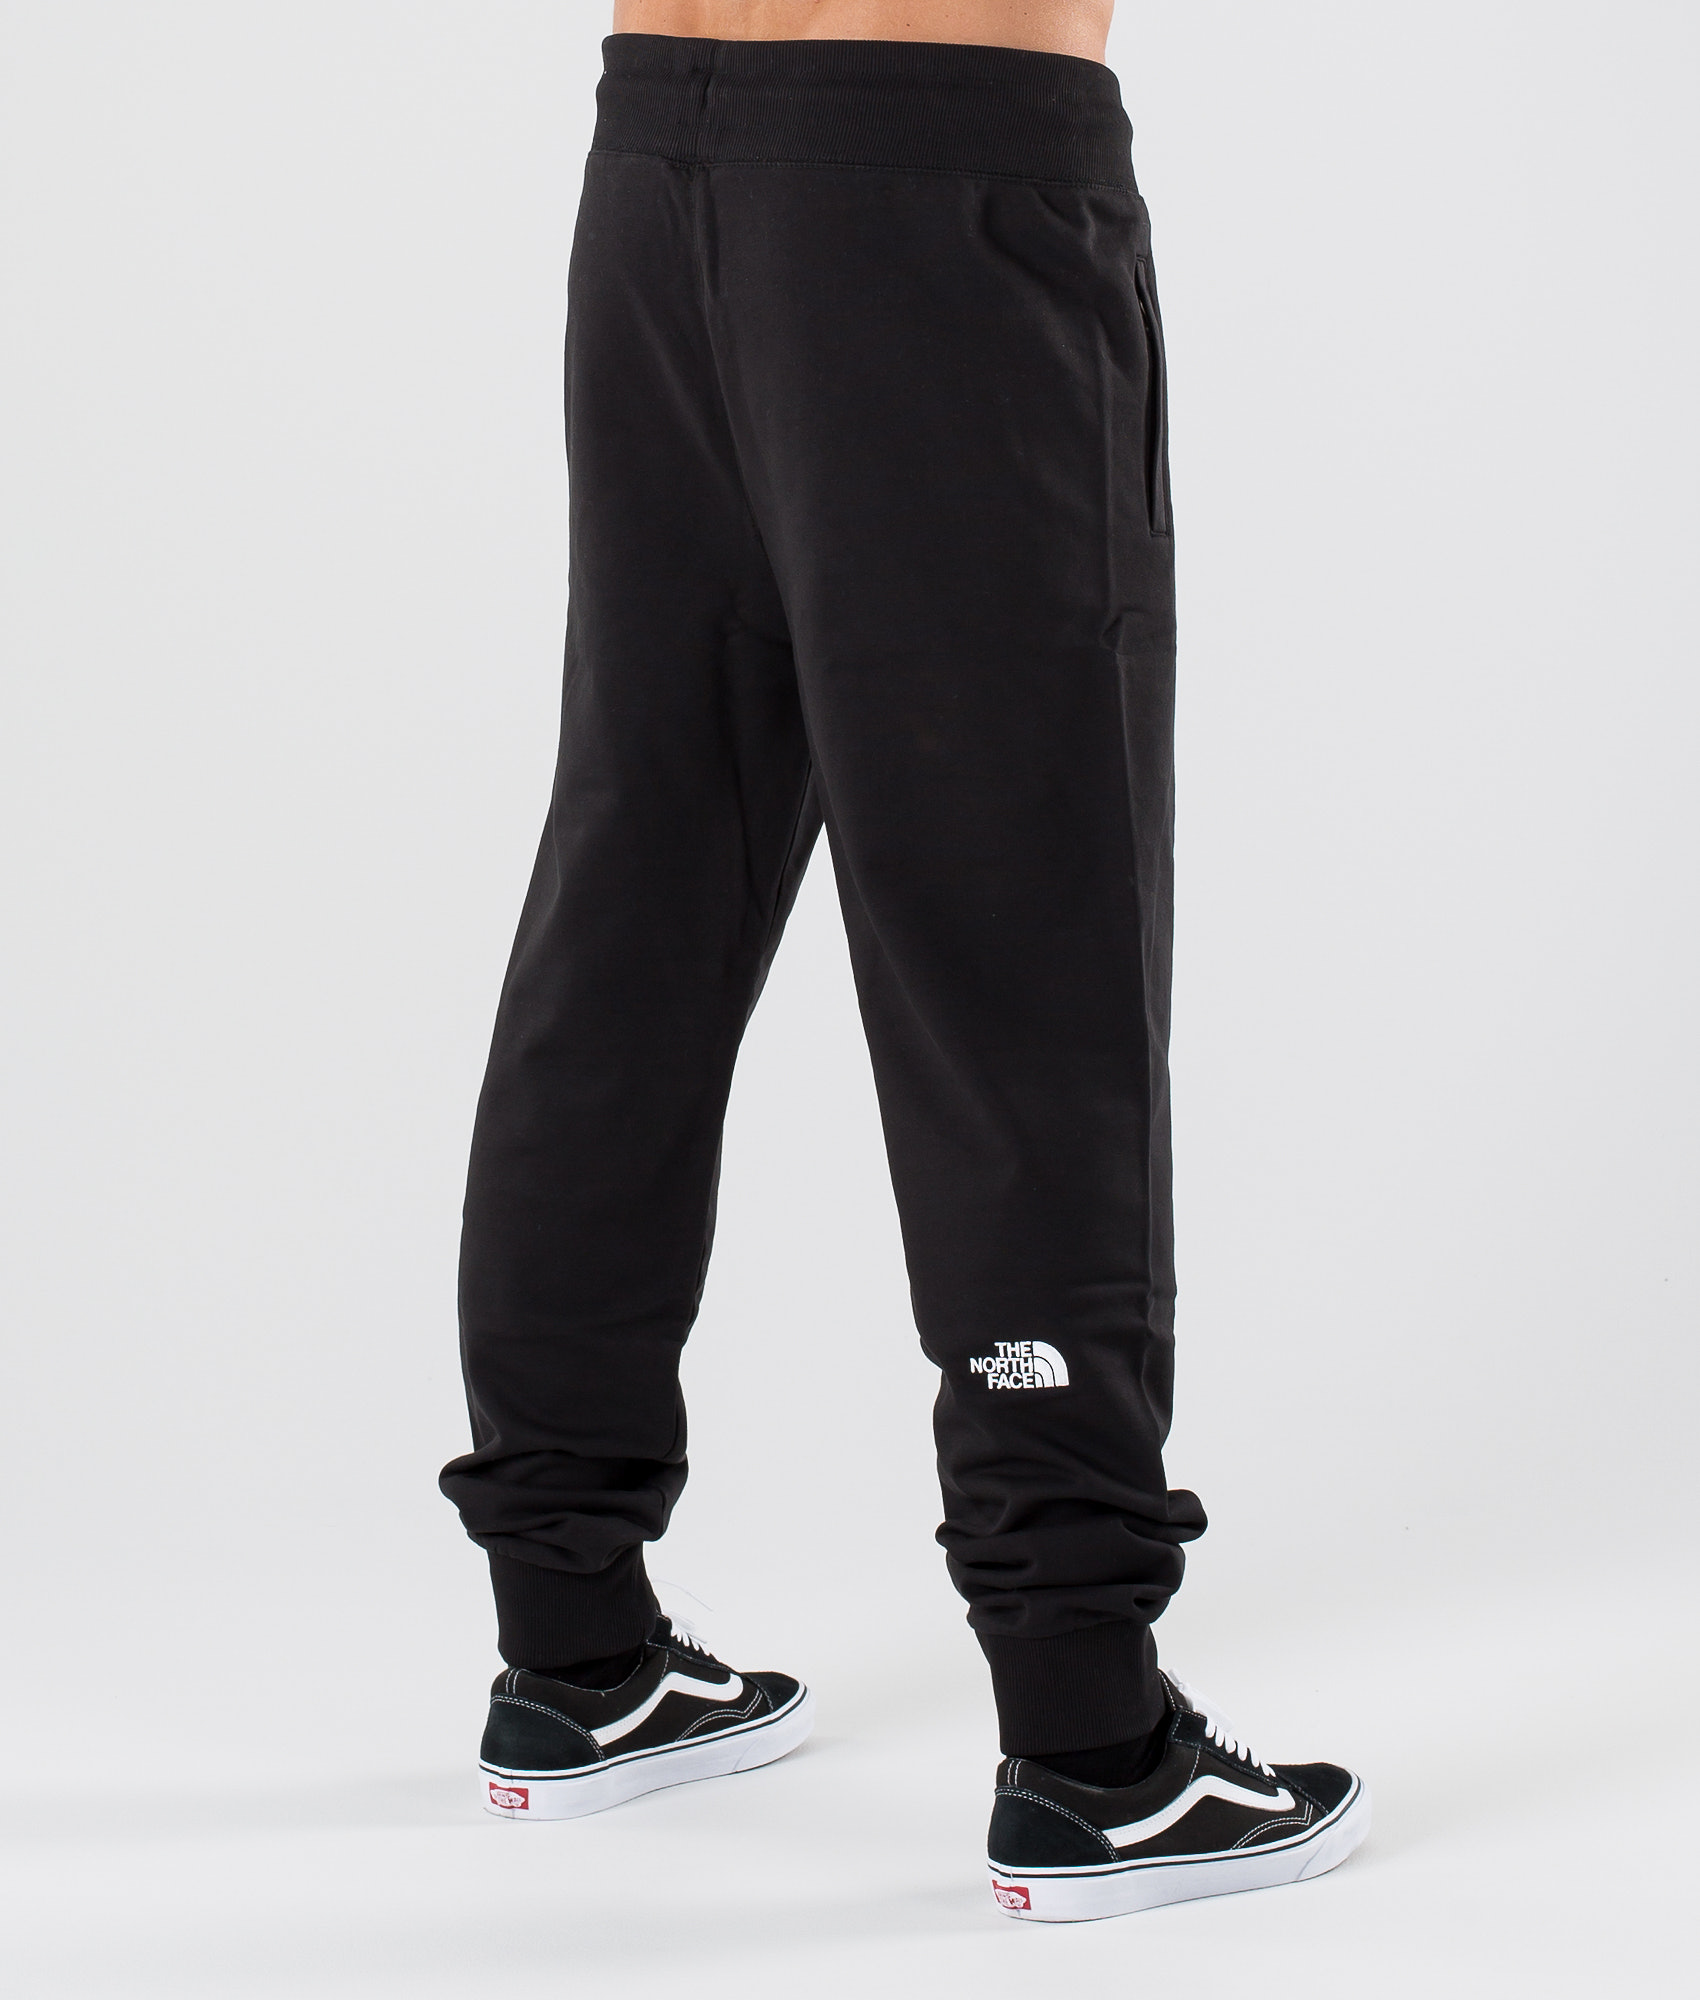 debe50a66 The North Face Nse Light Outdoor Trousers Black/White